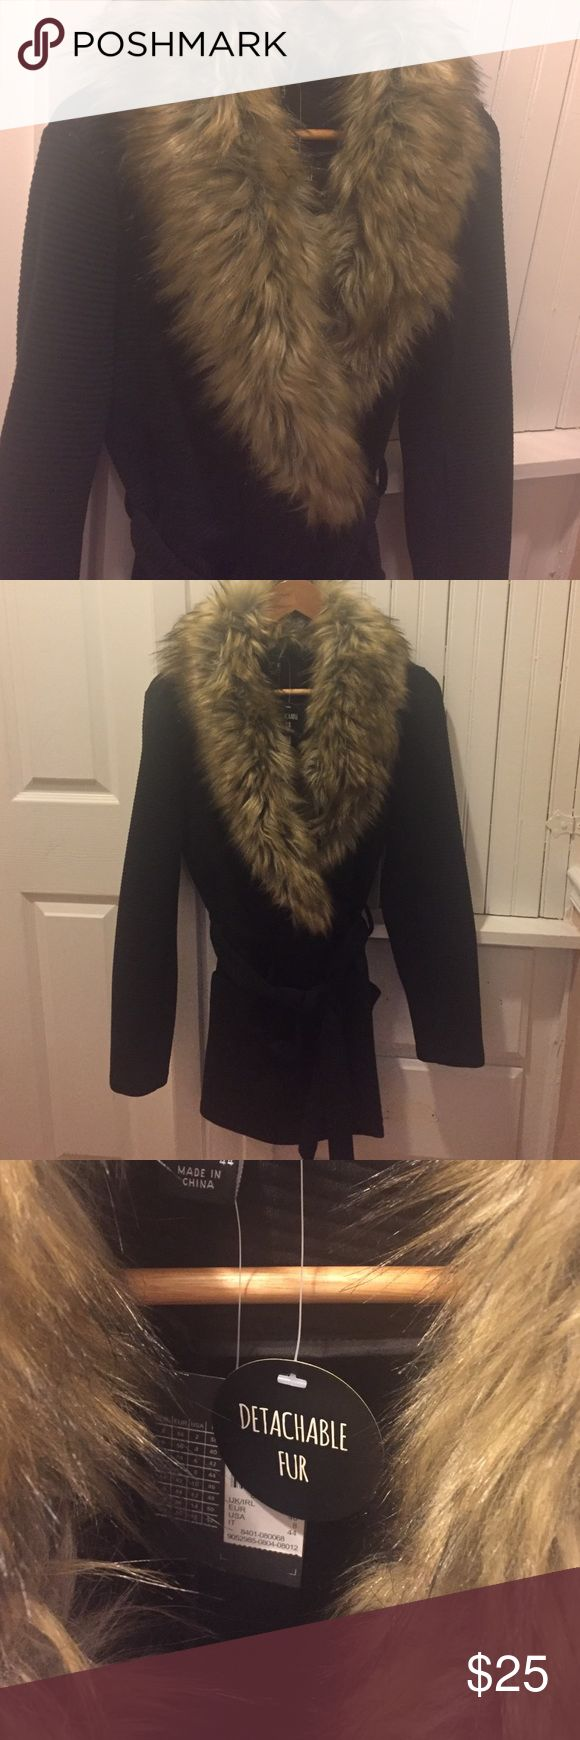 Brand new fur collar cardi/jacket From Europe size8 USA like a medium fit cardigan/jacket has a nice stretch to it soft removable fur collar black atmosphere primark Jackets & Coats